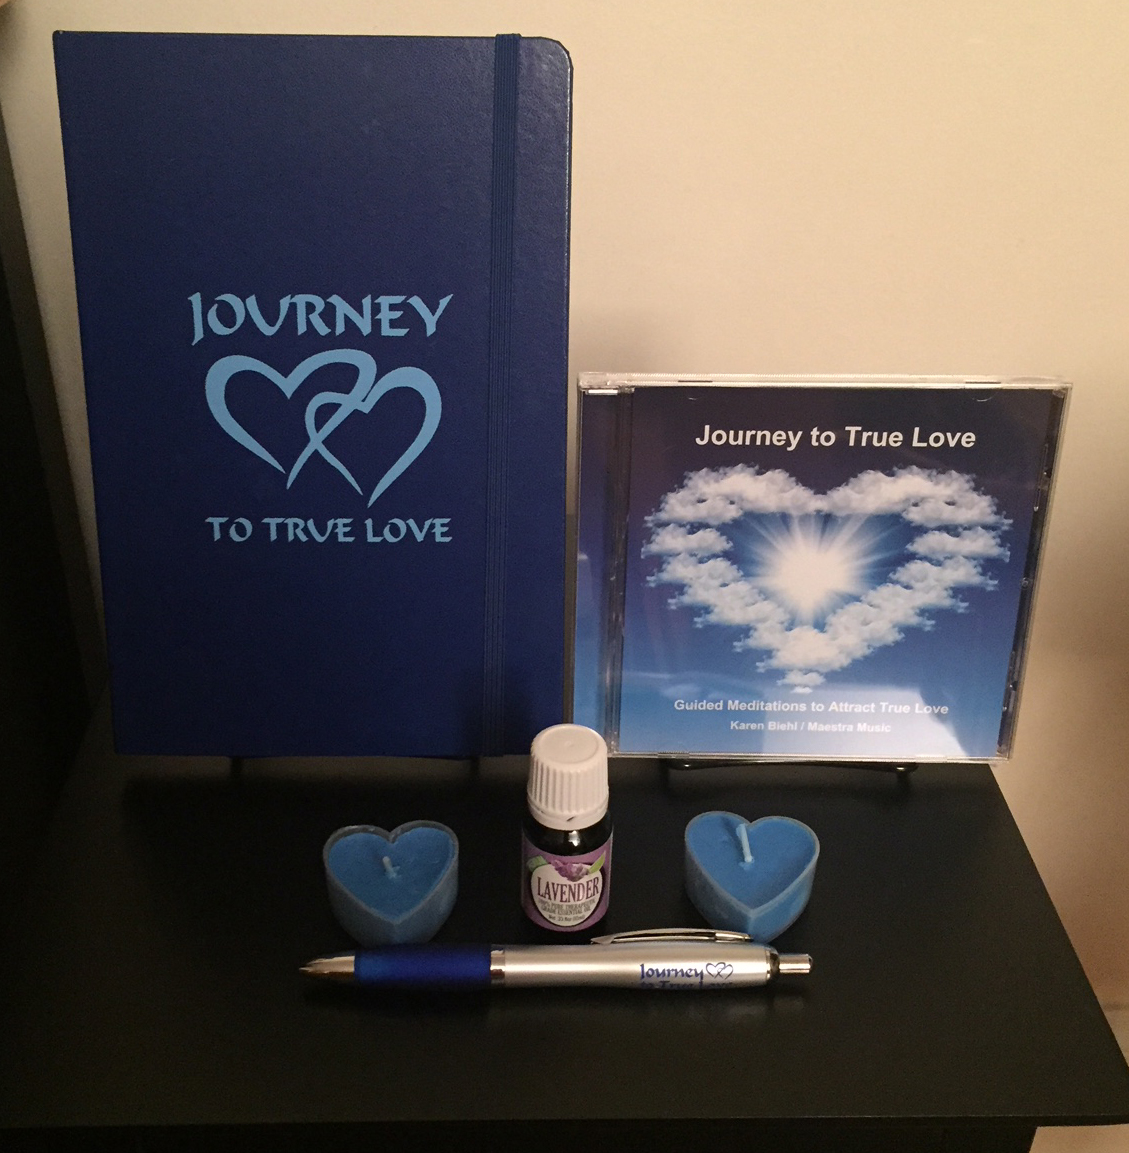 Journey to True Love: CD and Companion Journal